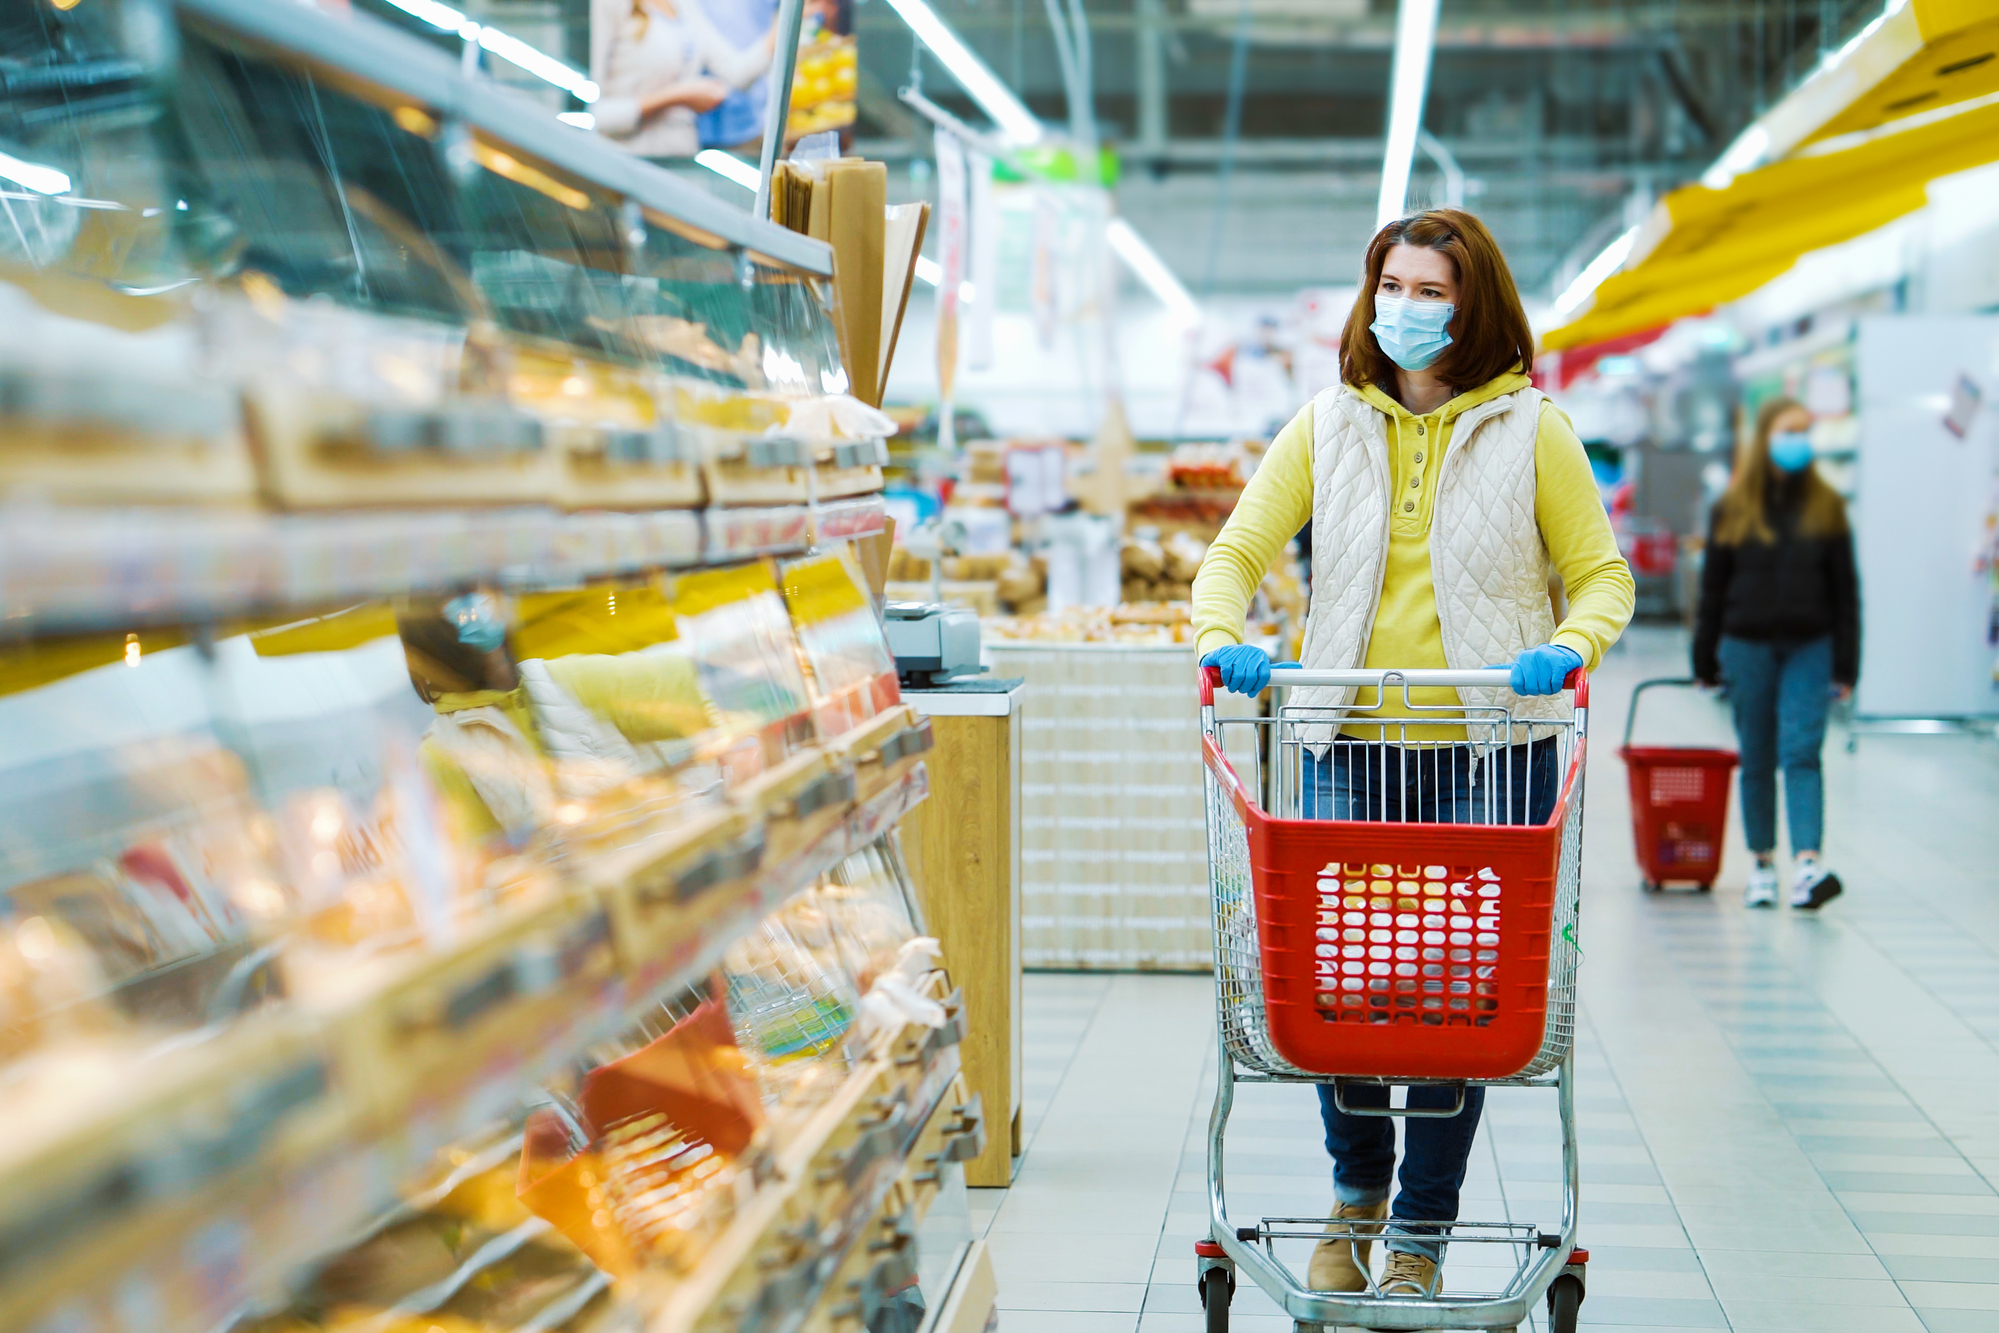 Young woman wearing medical mask and gloves with shopping cart walking along aisles with fresh bakery.